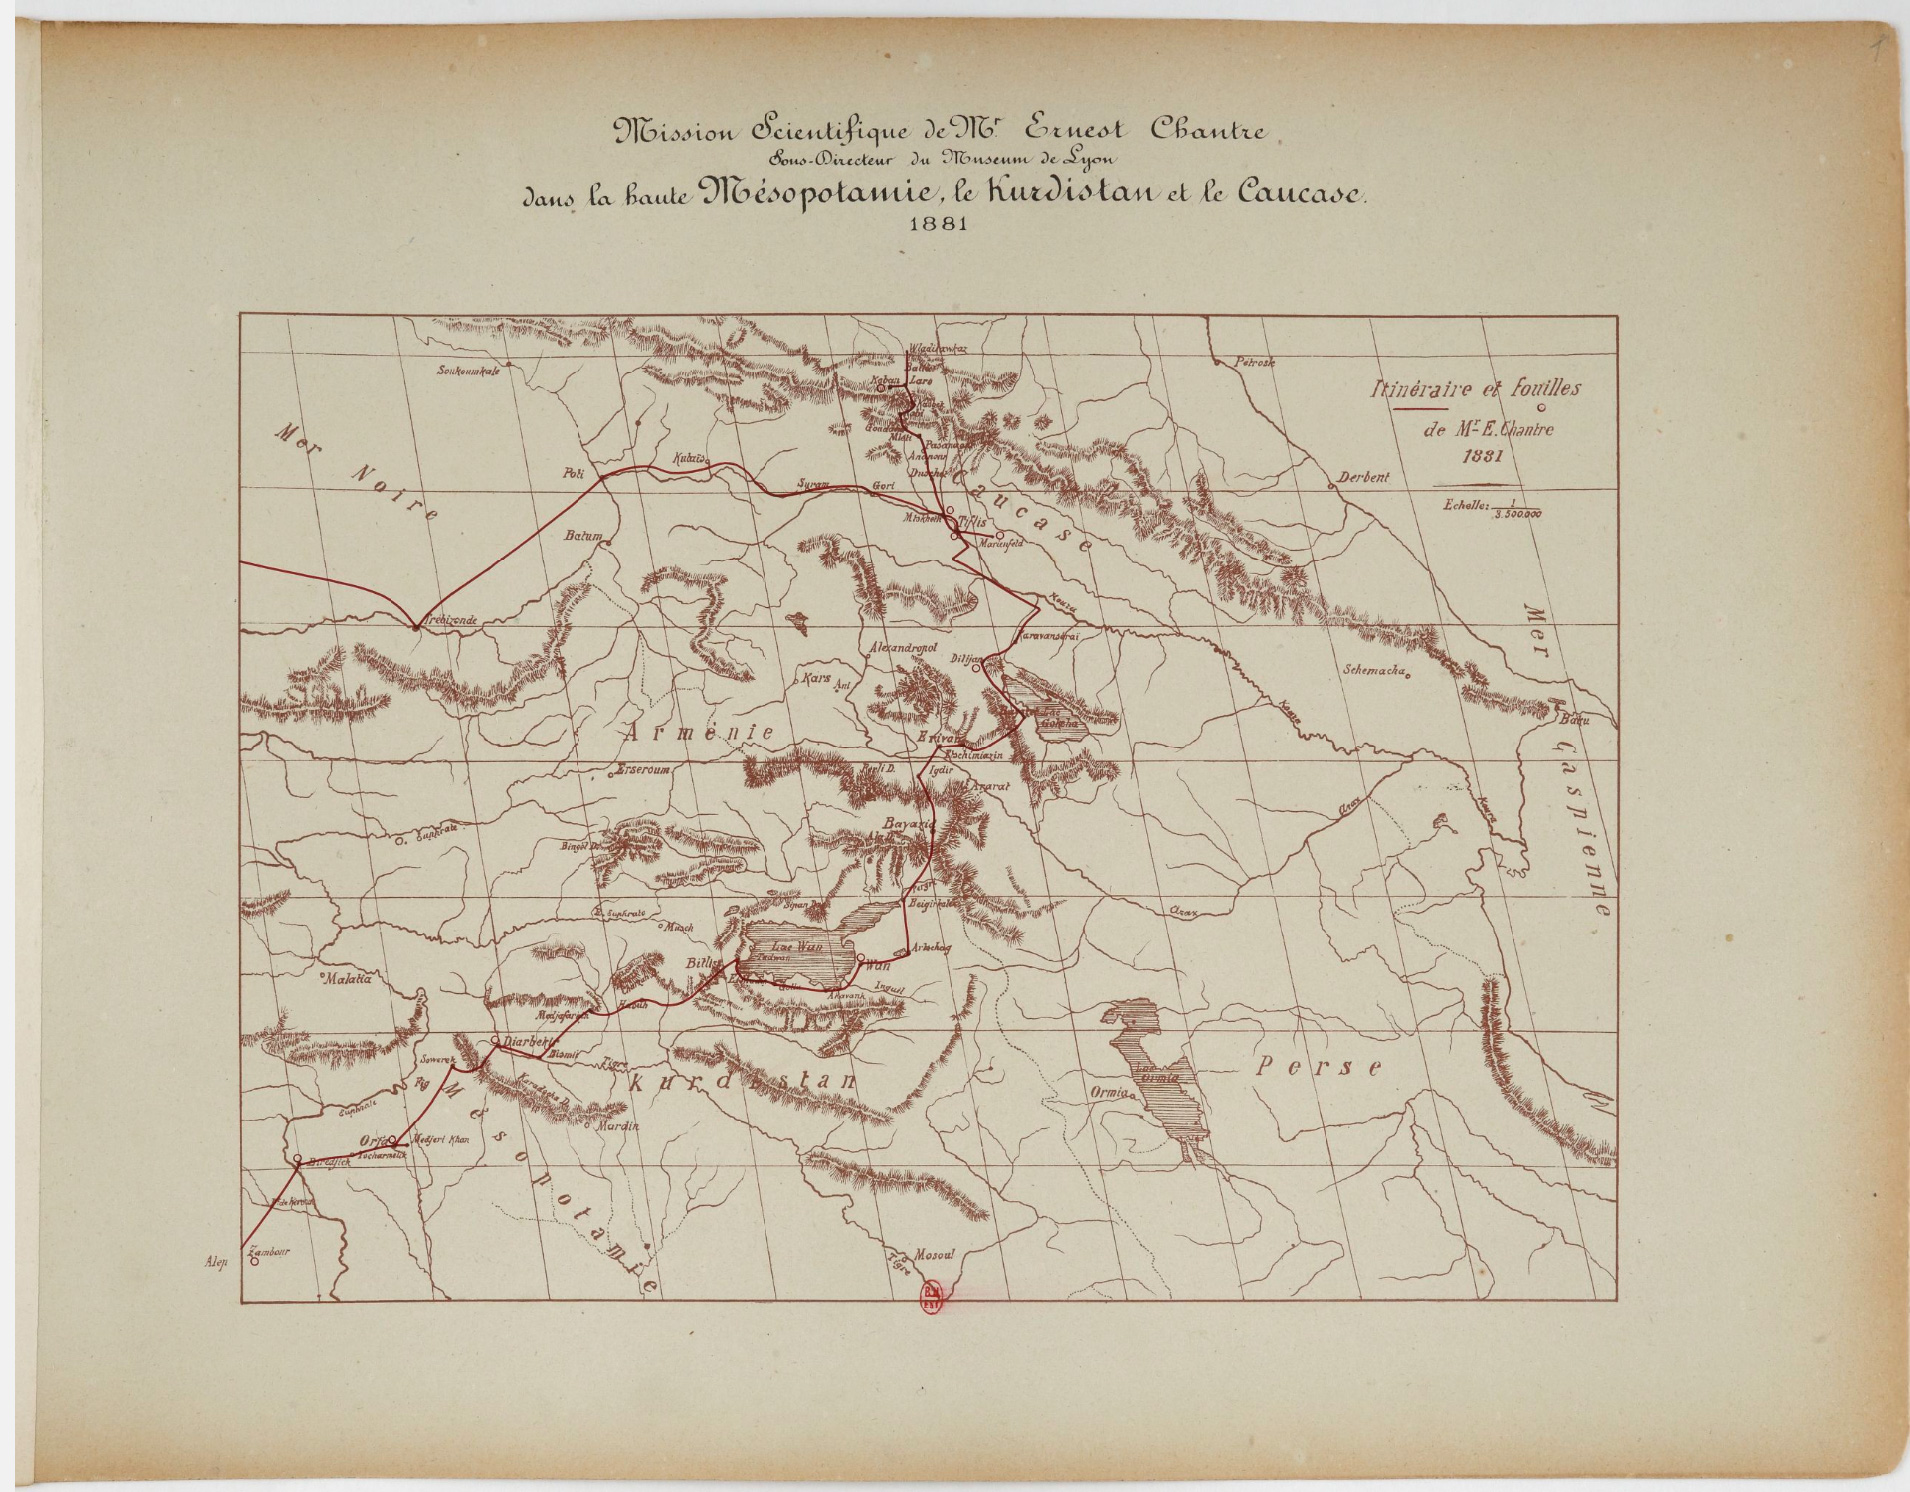 Map of the Caucasus and the rout of the Scientific Mission by Mr Ernest Chantre (1881)